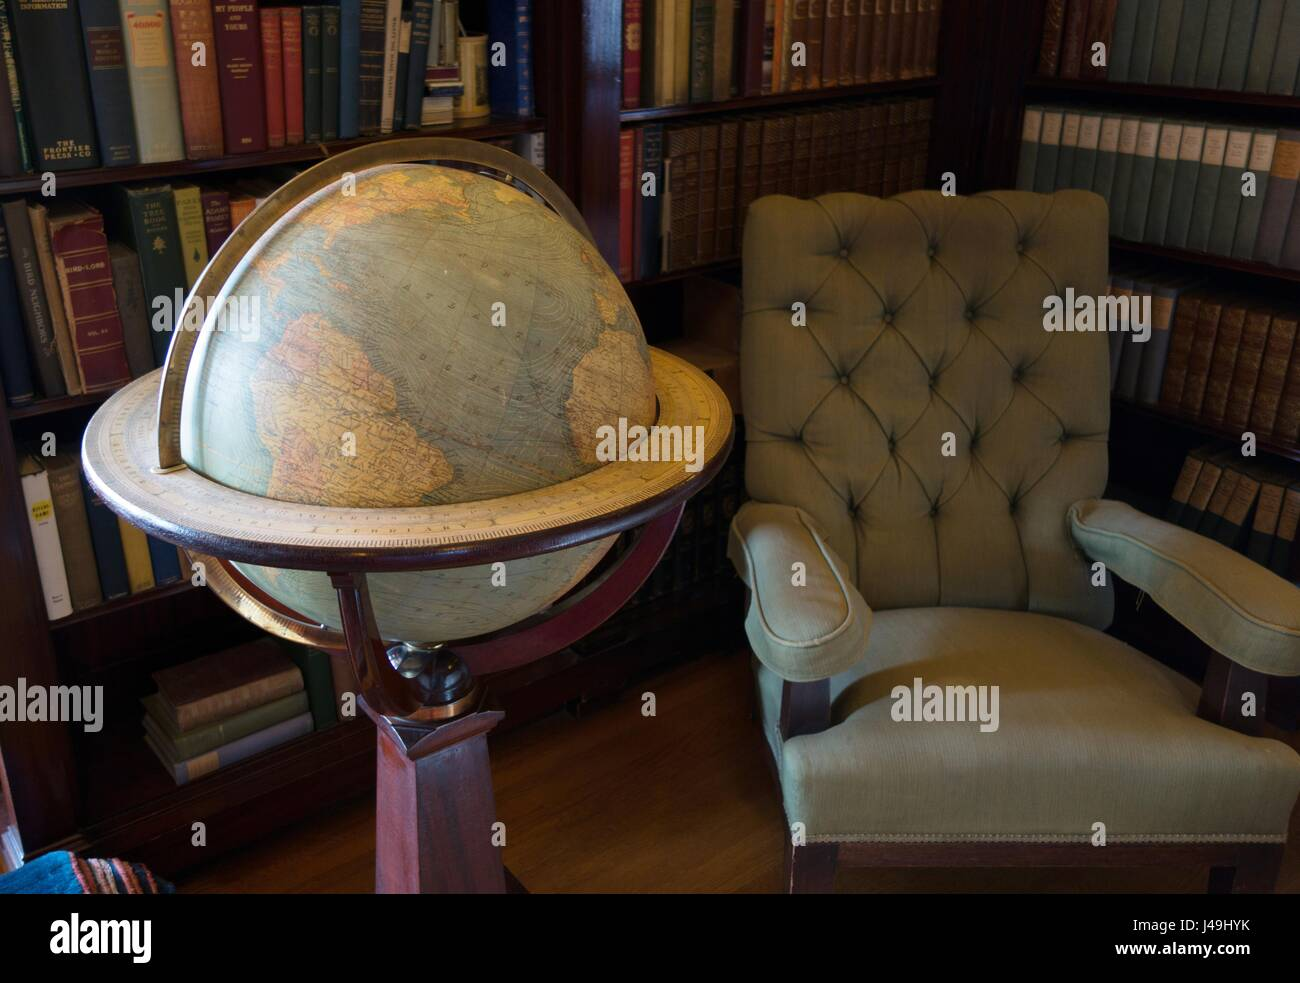 A globe, chair, and books, in a reading room at Glensheen Mansion in Duluth, Minnesota, USA. - Stock Image